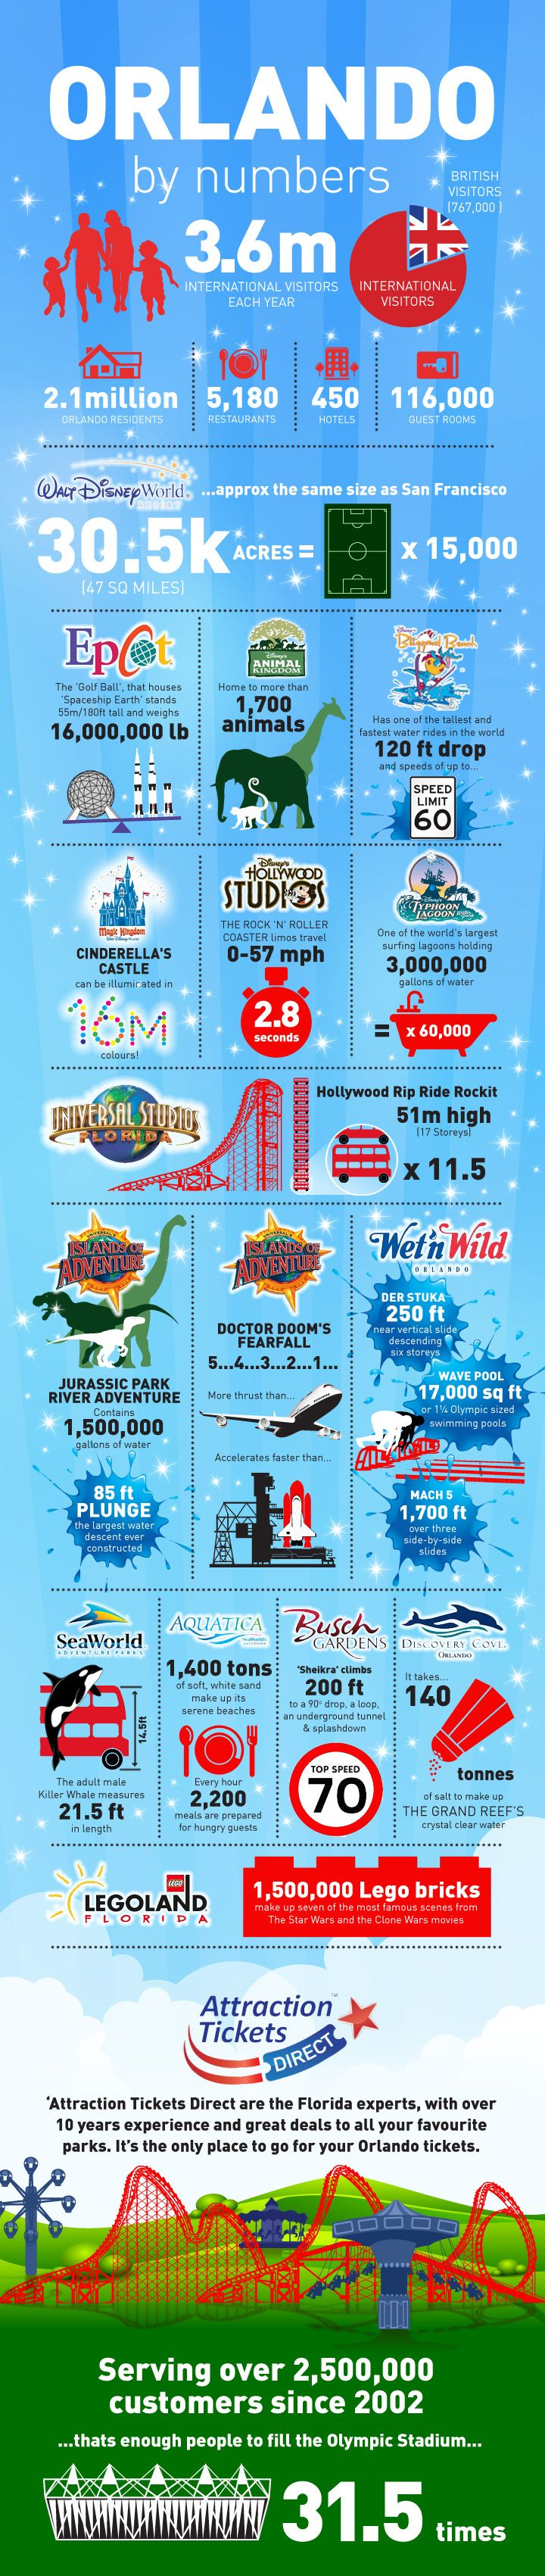 Orlando by Numbers Infographic | Attraction Tickets Direct